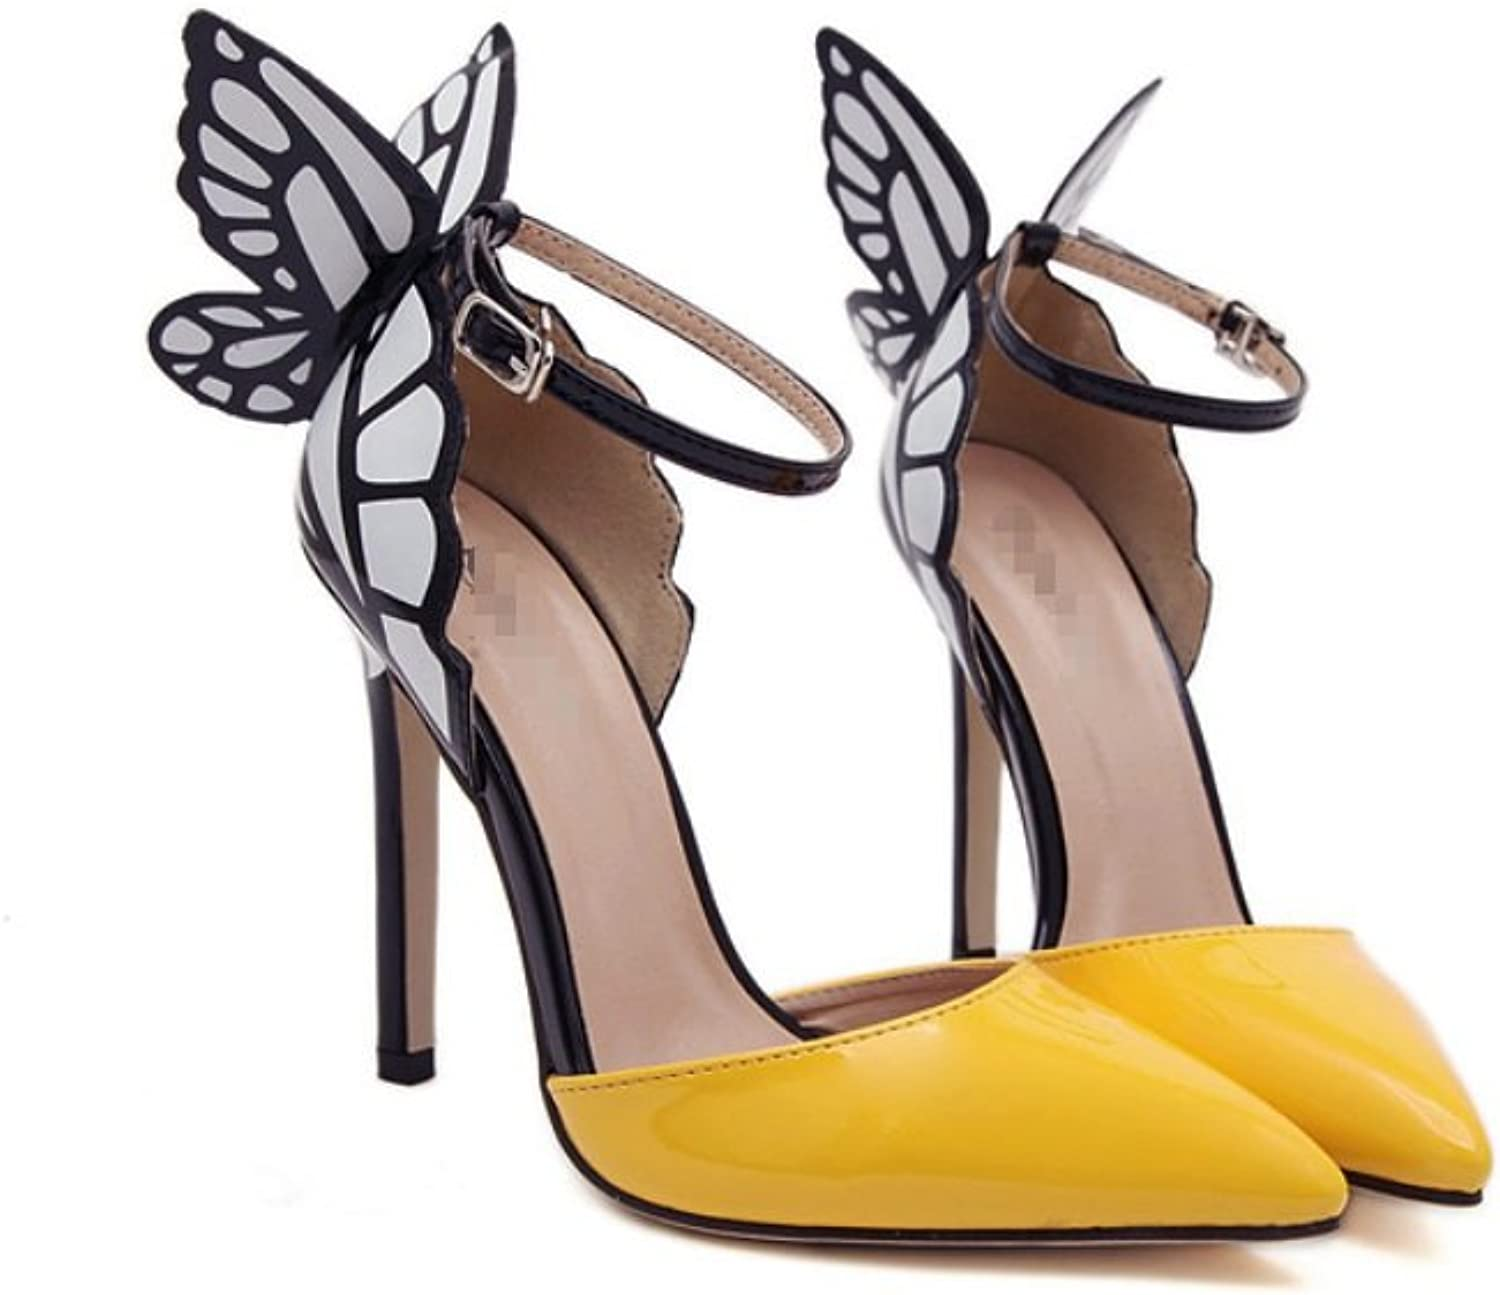 Ladies Fine with Super High Heel-Fashion Sexy Pointy shoes-Pure color Dream Butterfly Wing High Heels-Comfortable Heel shoes Zhhzz